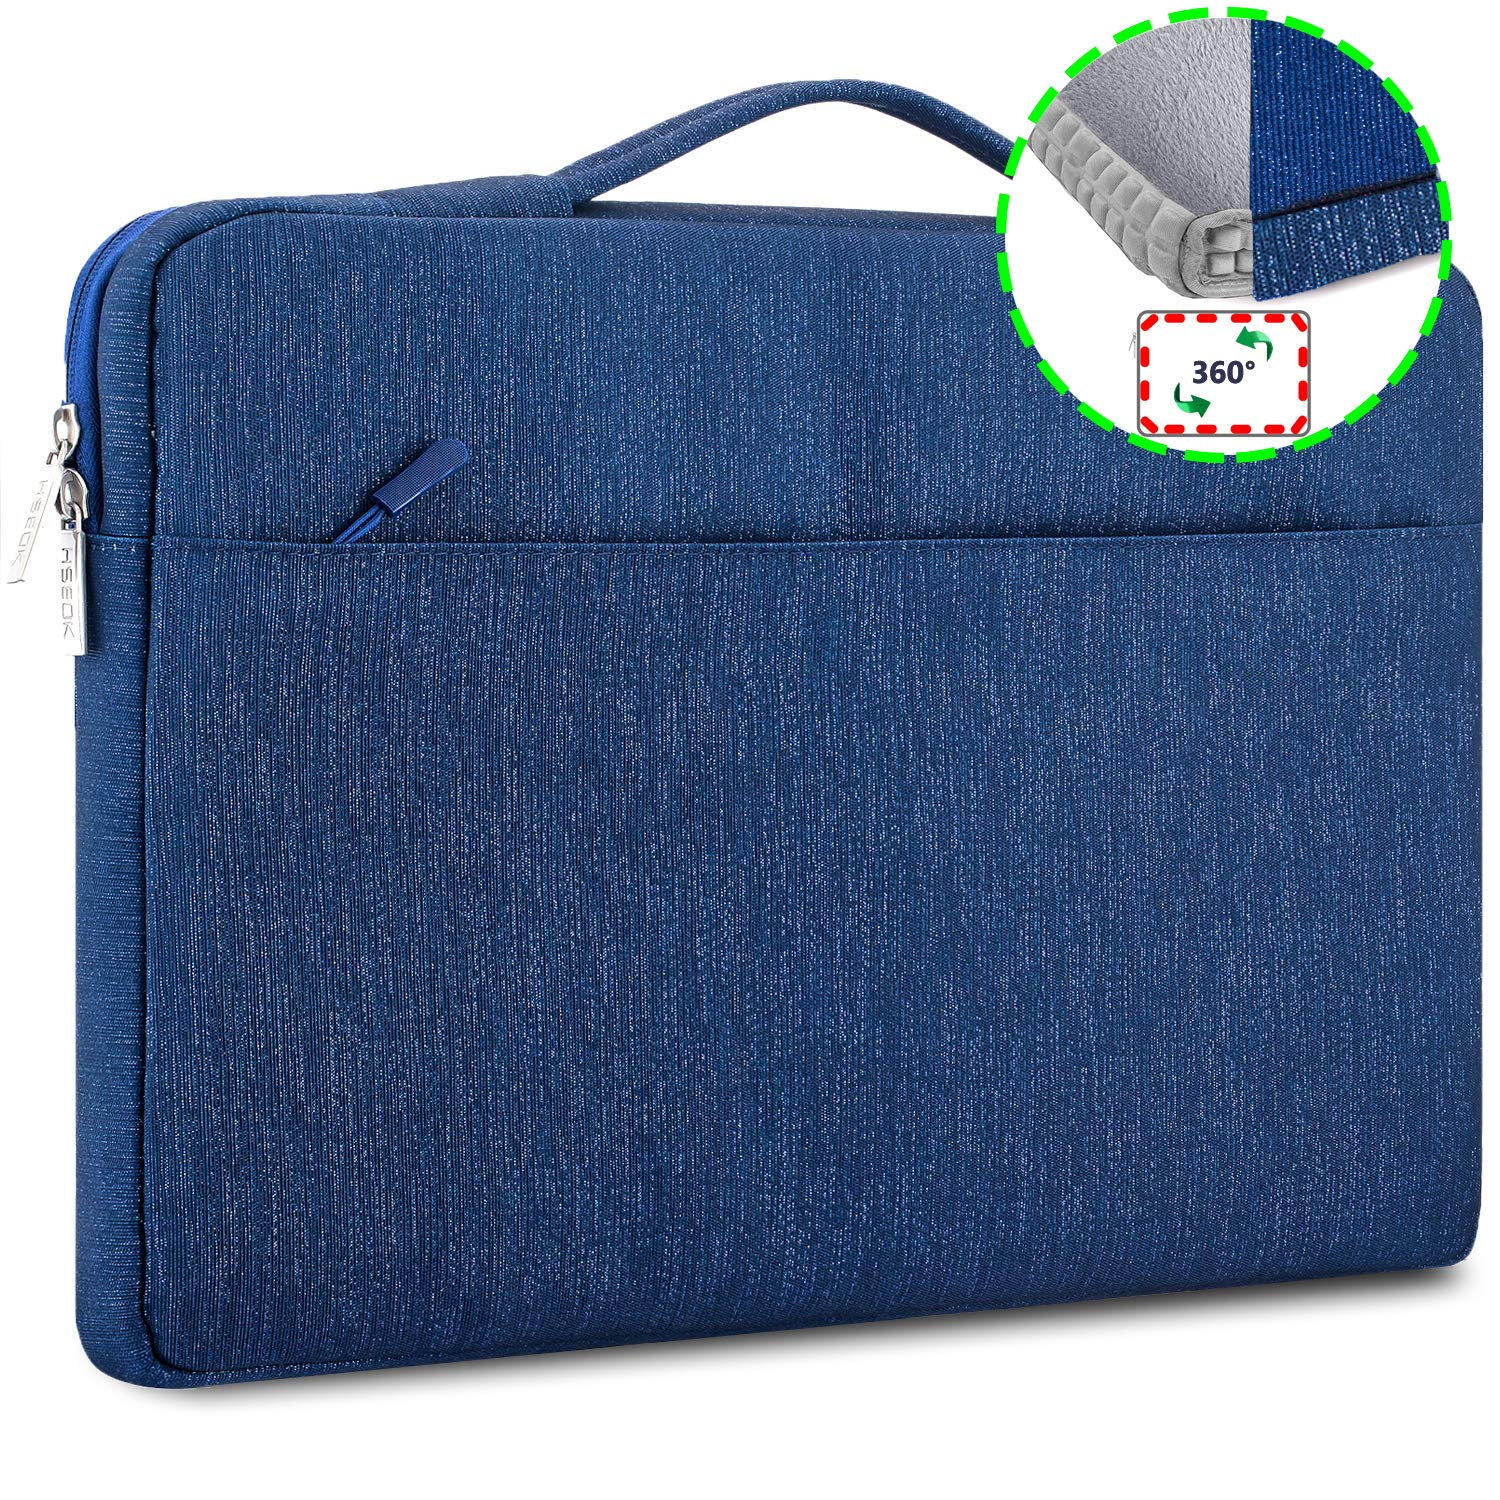 8fe0284537ff HSEOK Laptop Sleeve 15.6-Inch Case Briefcase for Most 15-15.6 Inch NoteBook  Dell/Ausu/Acer/HP/Toshiba/Lenovo,Spill and Drop Resistant Carrying Case, ...